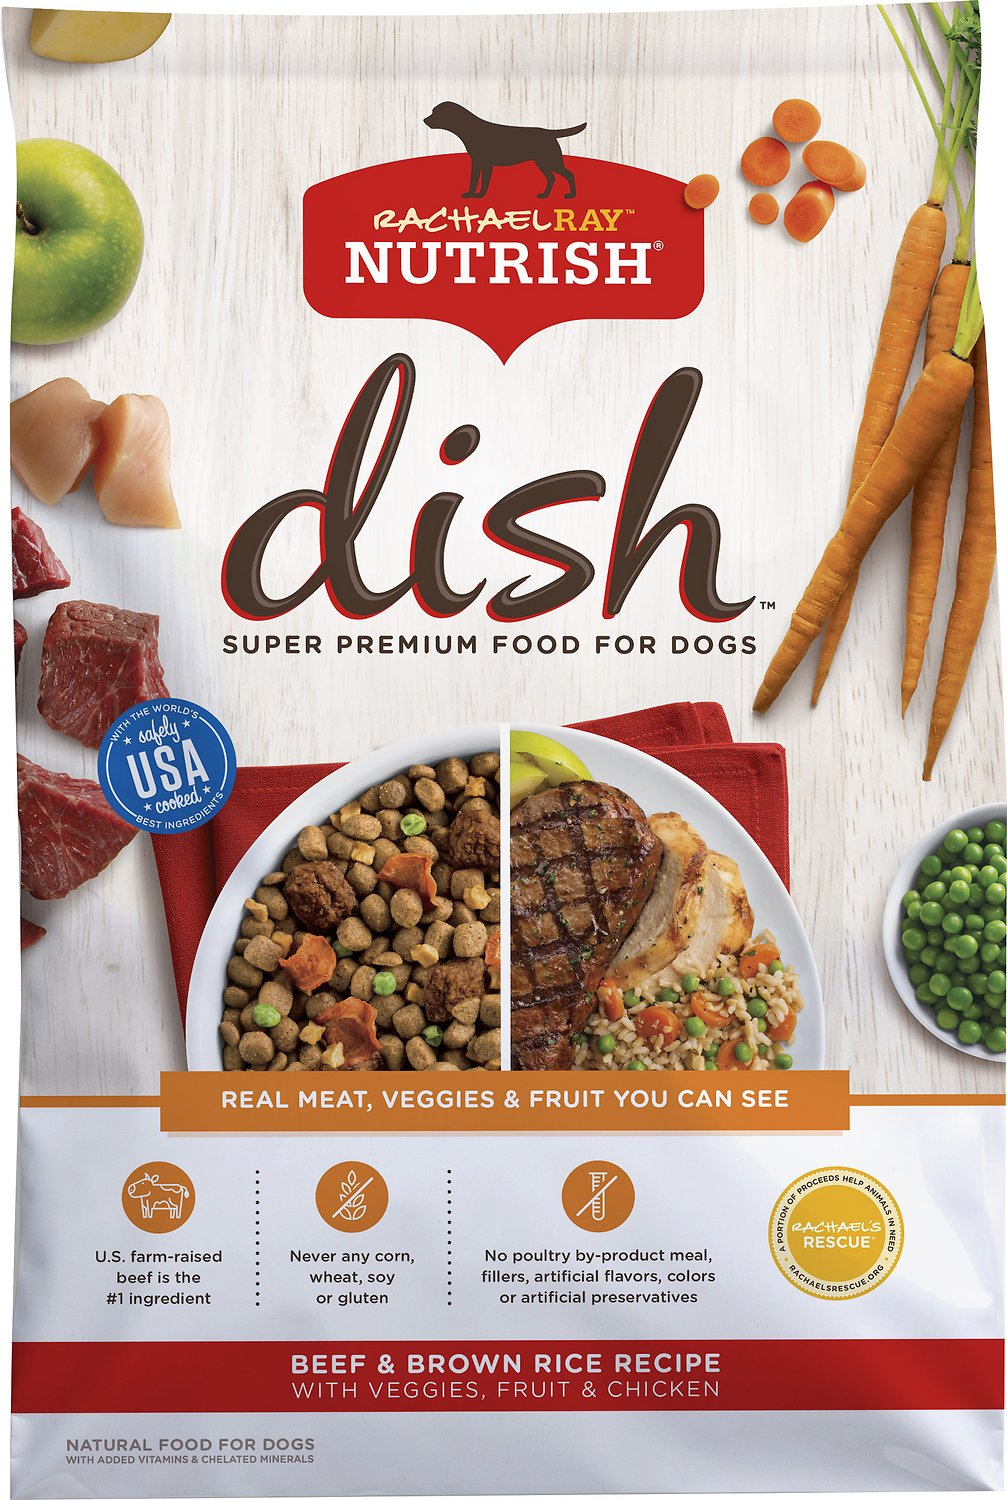 Rachael ray nutrish dish natural beef brown rice recipe with video forumfinder Choice Image